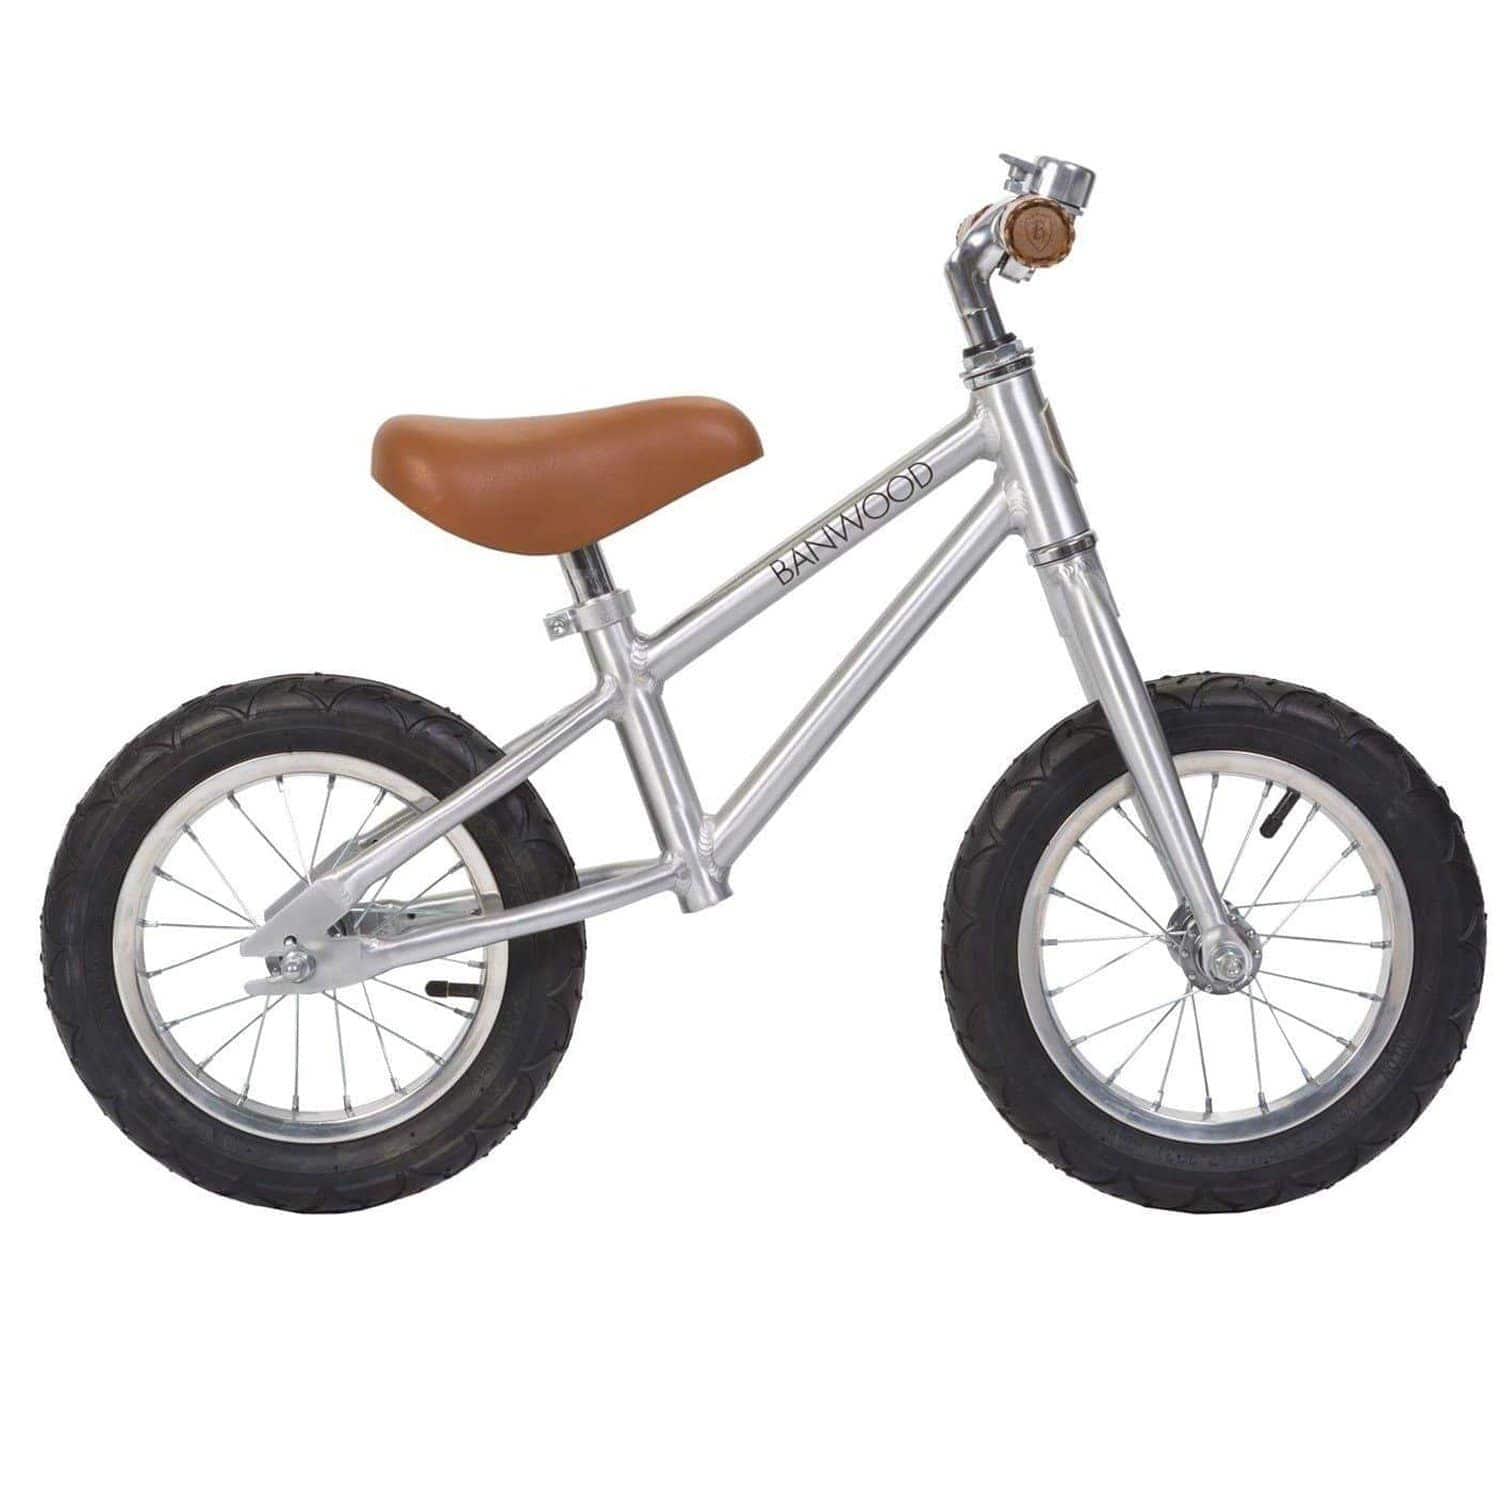 Chrome balance bike